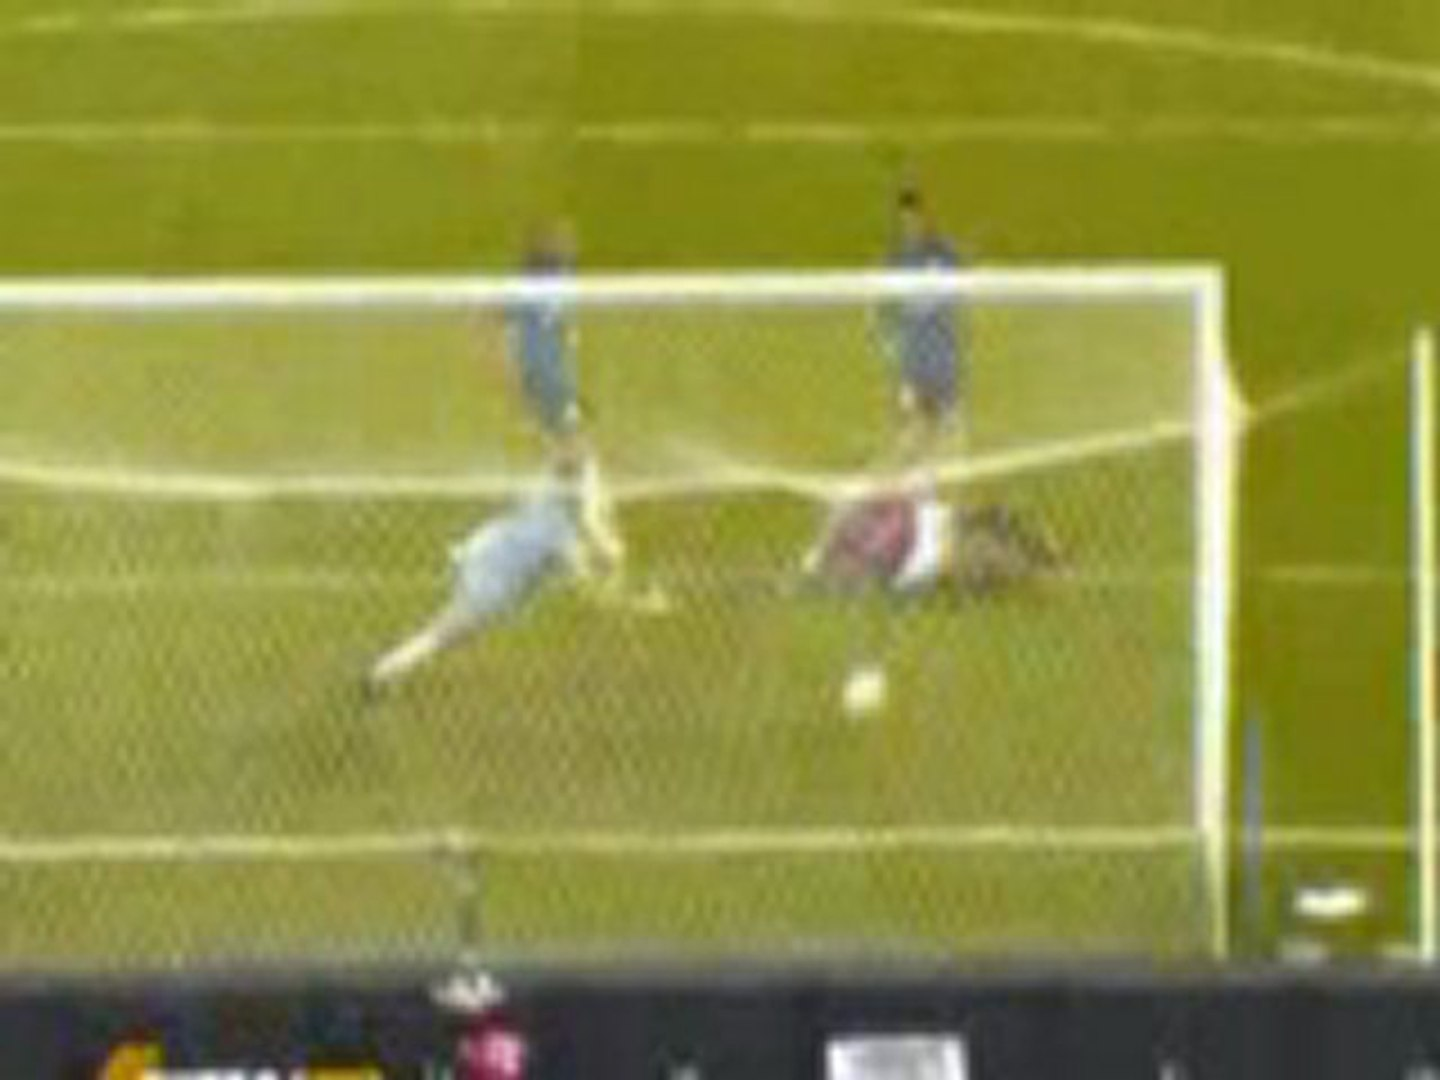 Manchester City Vs manchester United 2-3 - All Goals & Highlights - 07-08-2011